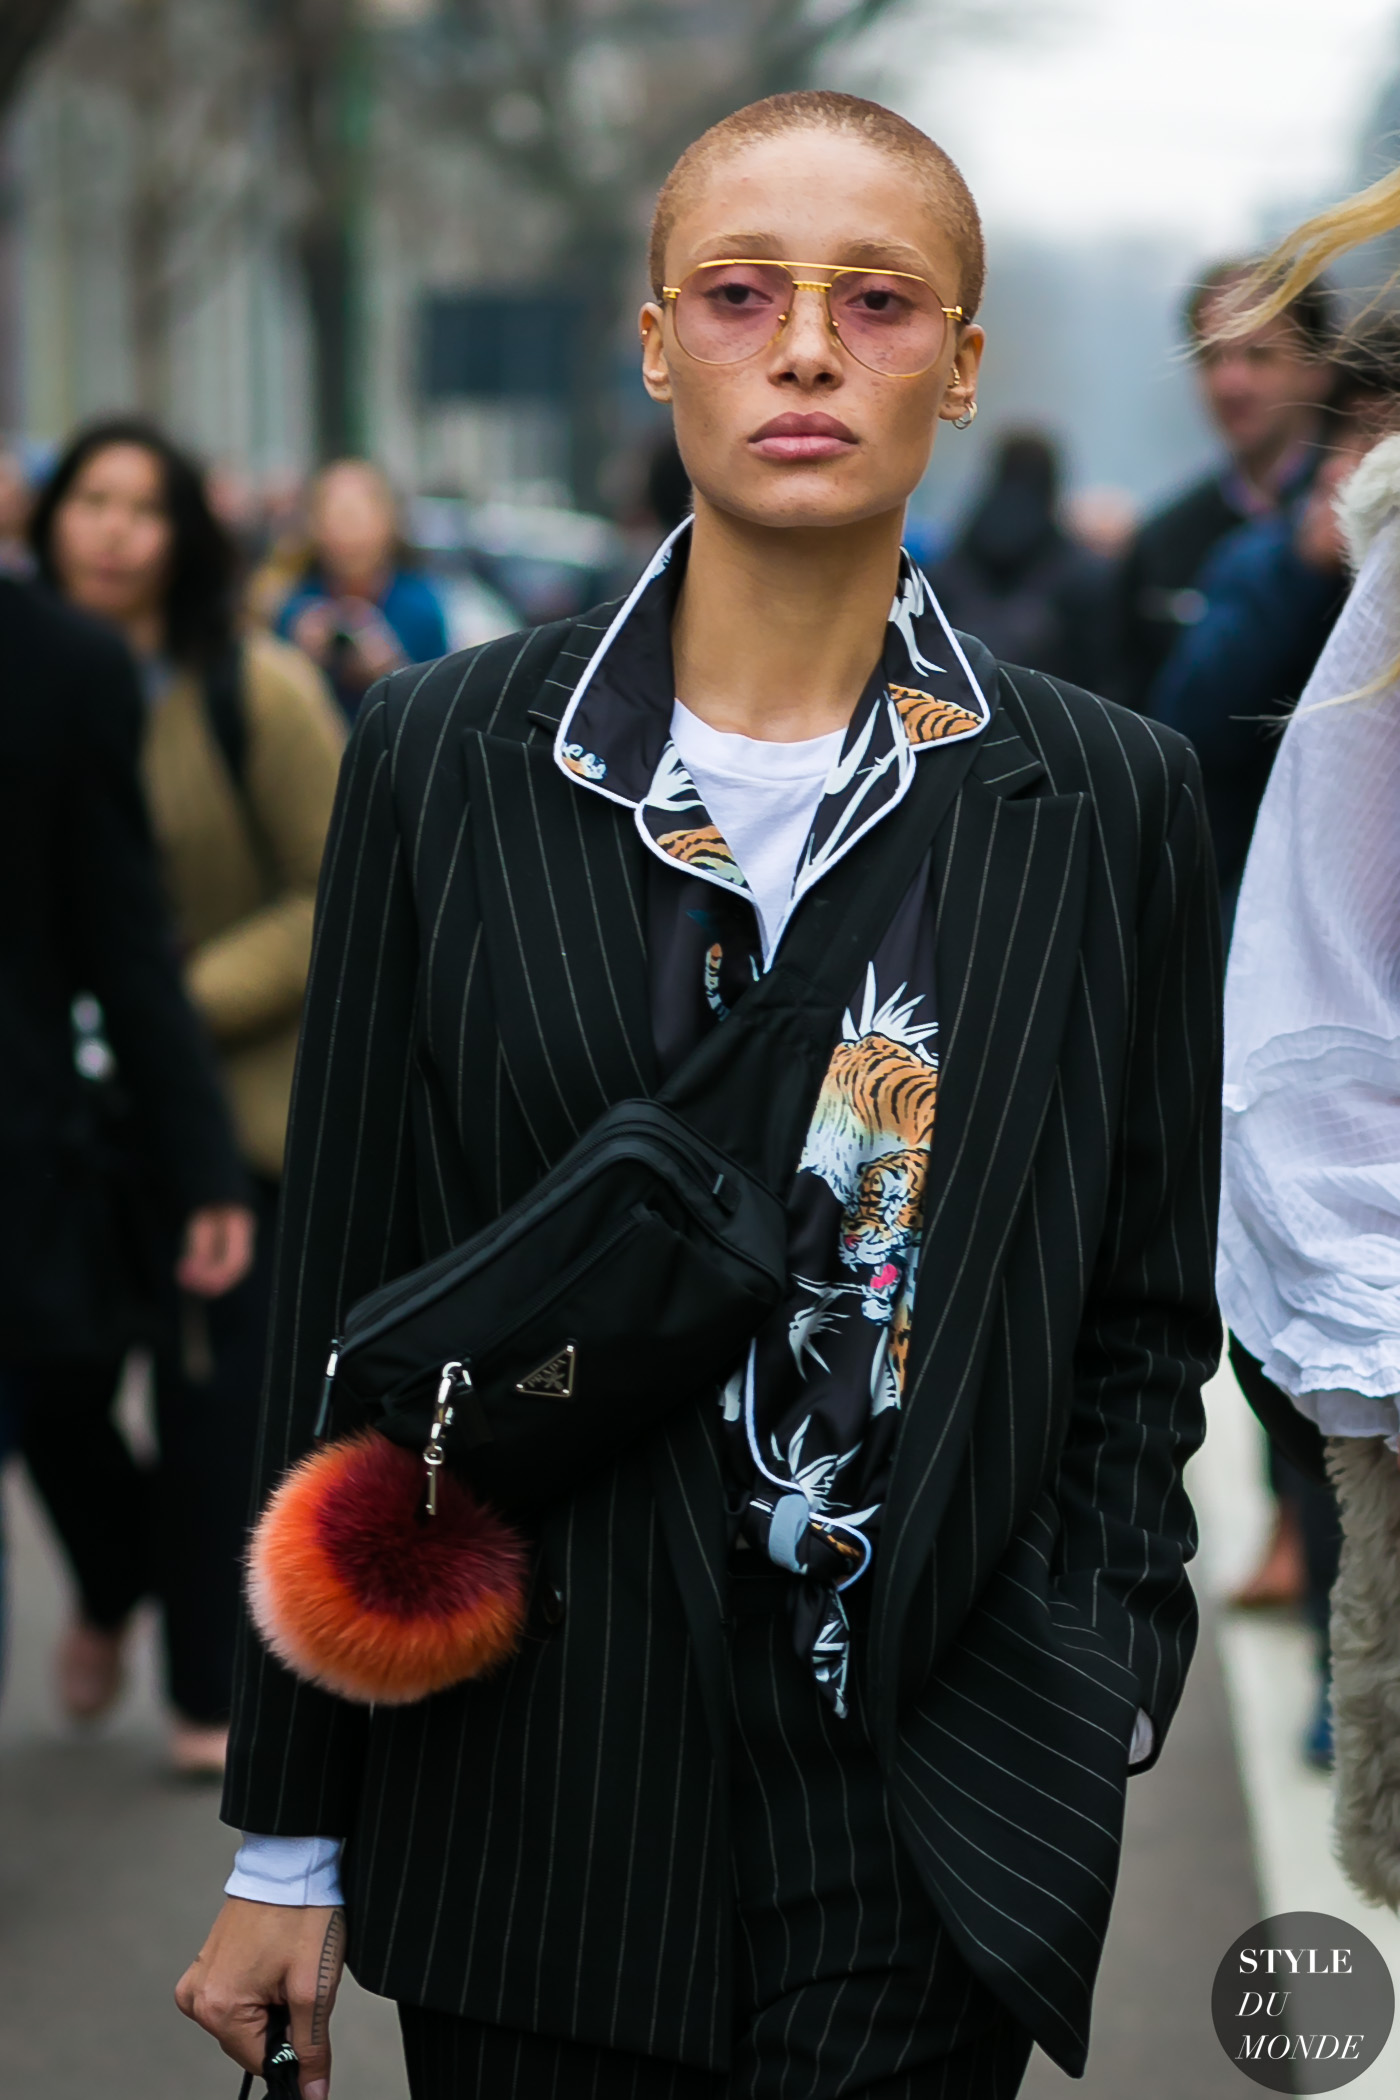 Adwoa Aboah by STYLEDUMONDE Street Style Fashion Photography0E2A6276